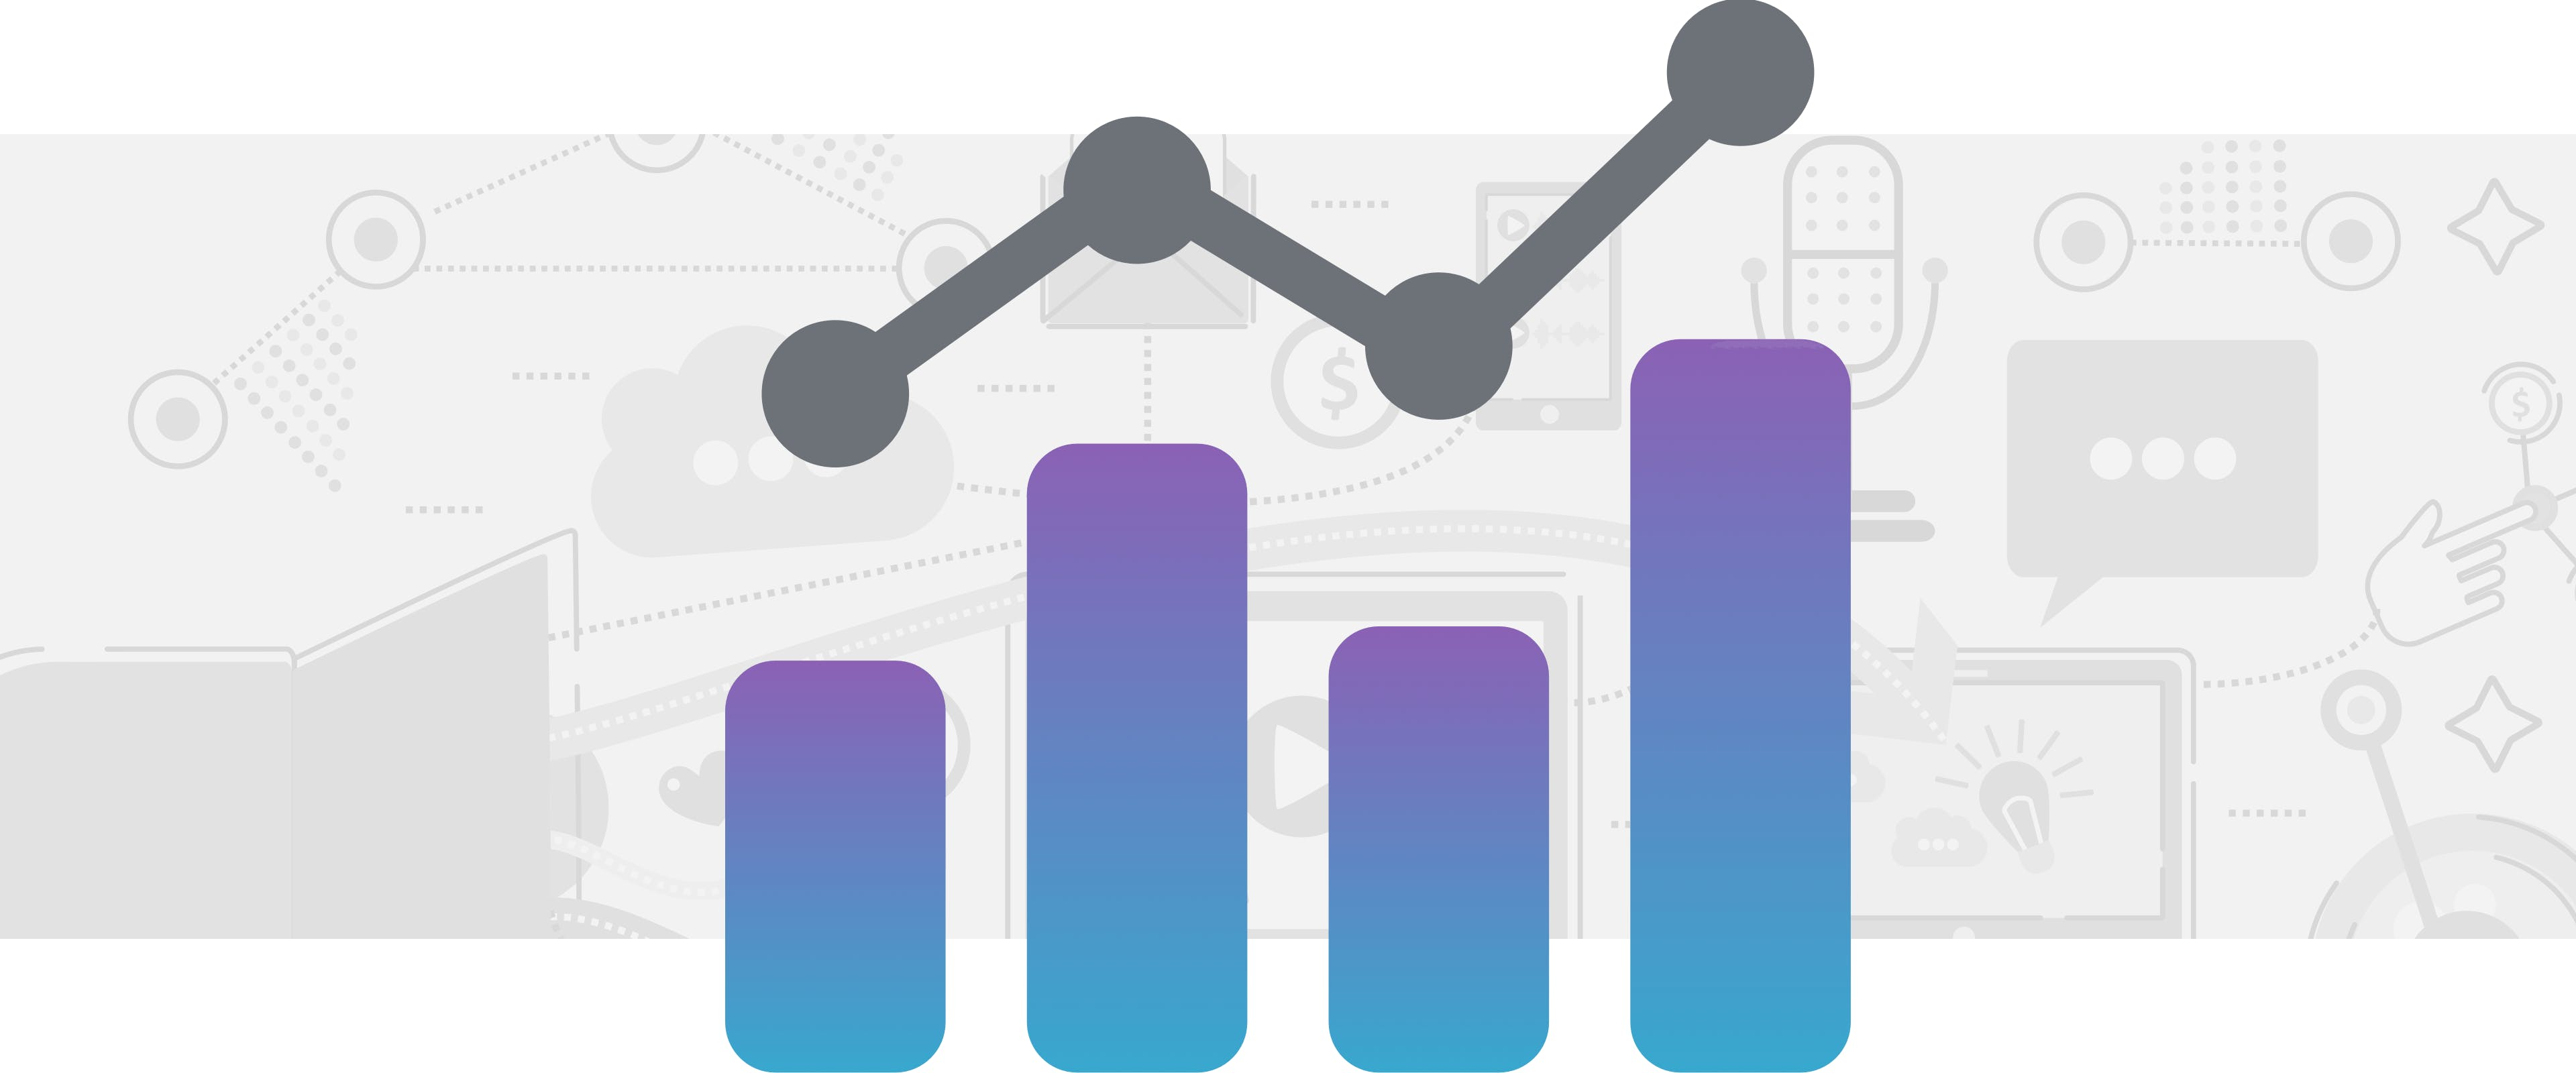 Purple and blue bar graph with grey line above